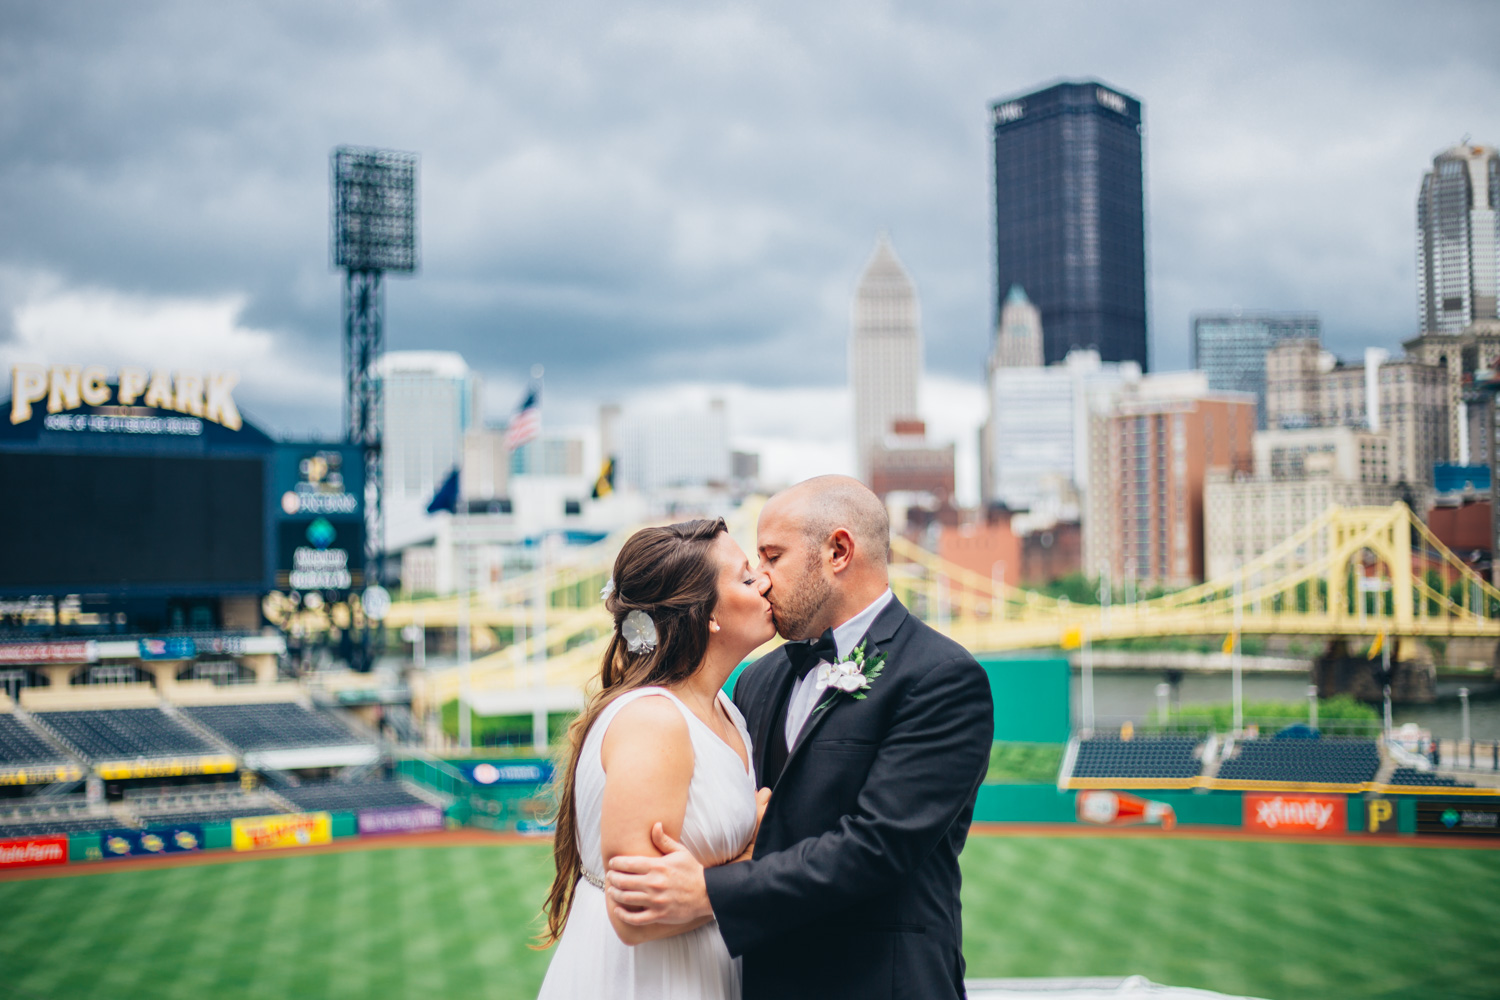 wedding-at-pnc-park-convention-center-downtown-pittsburgh-man-nguyen-photography-8